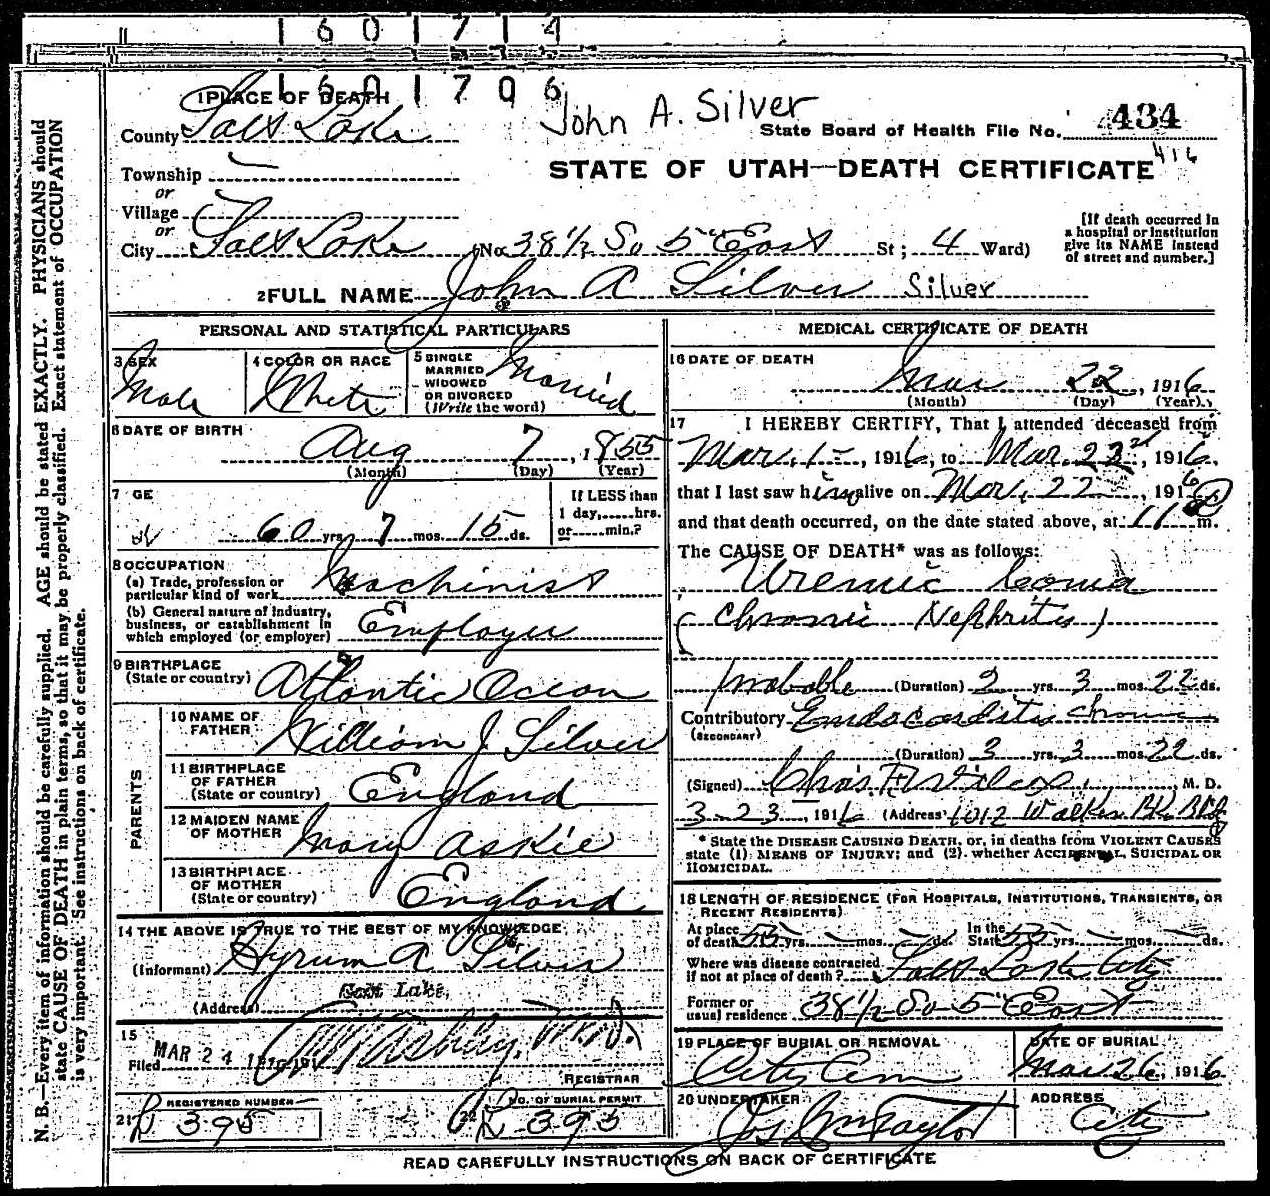 death certificate of john askie silver